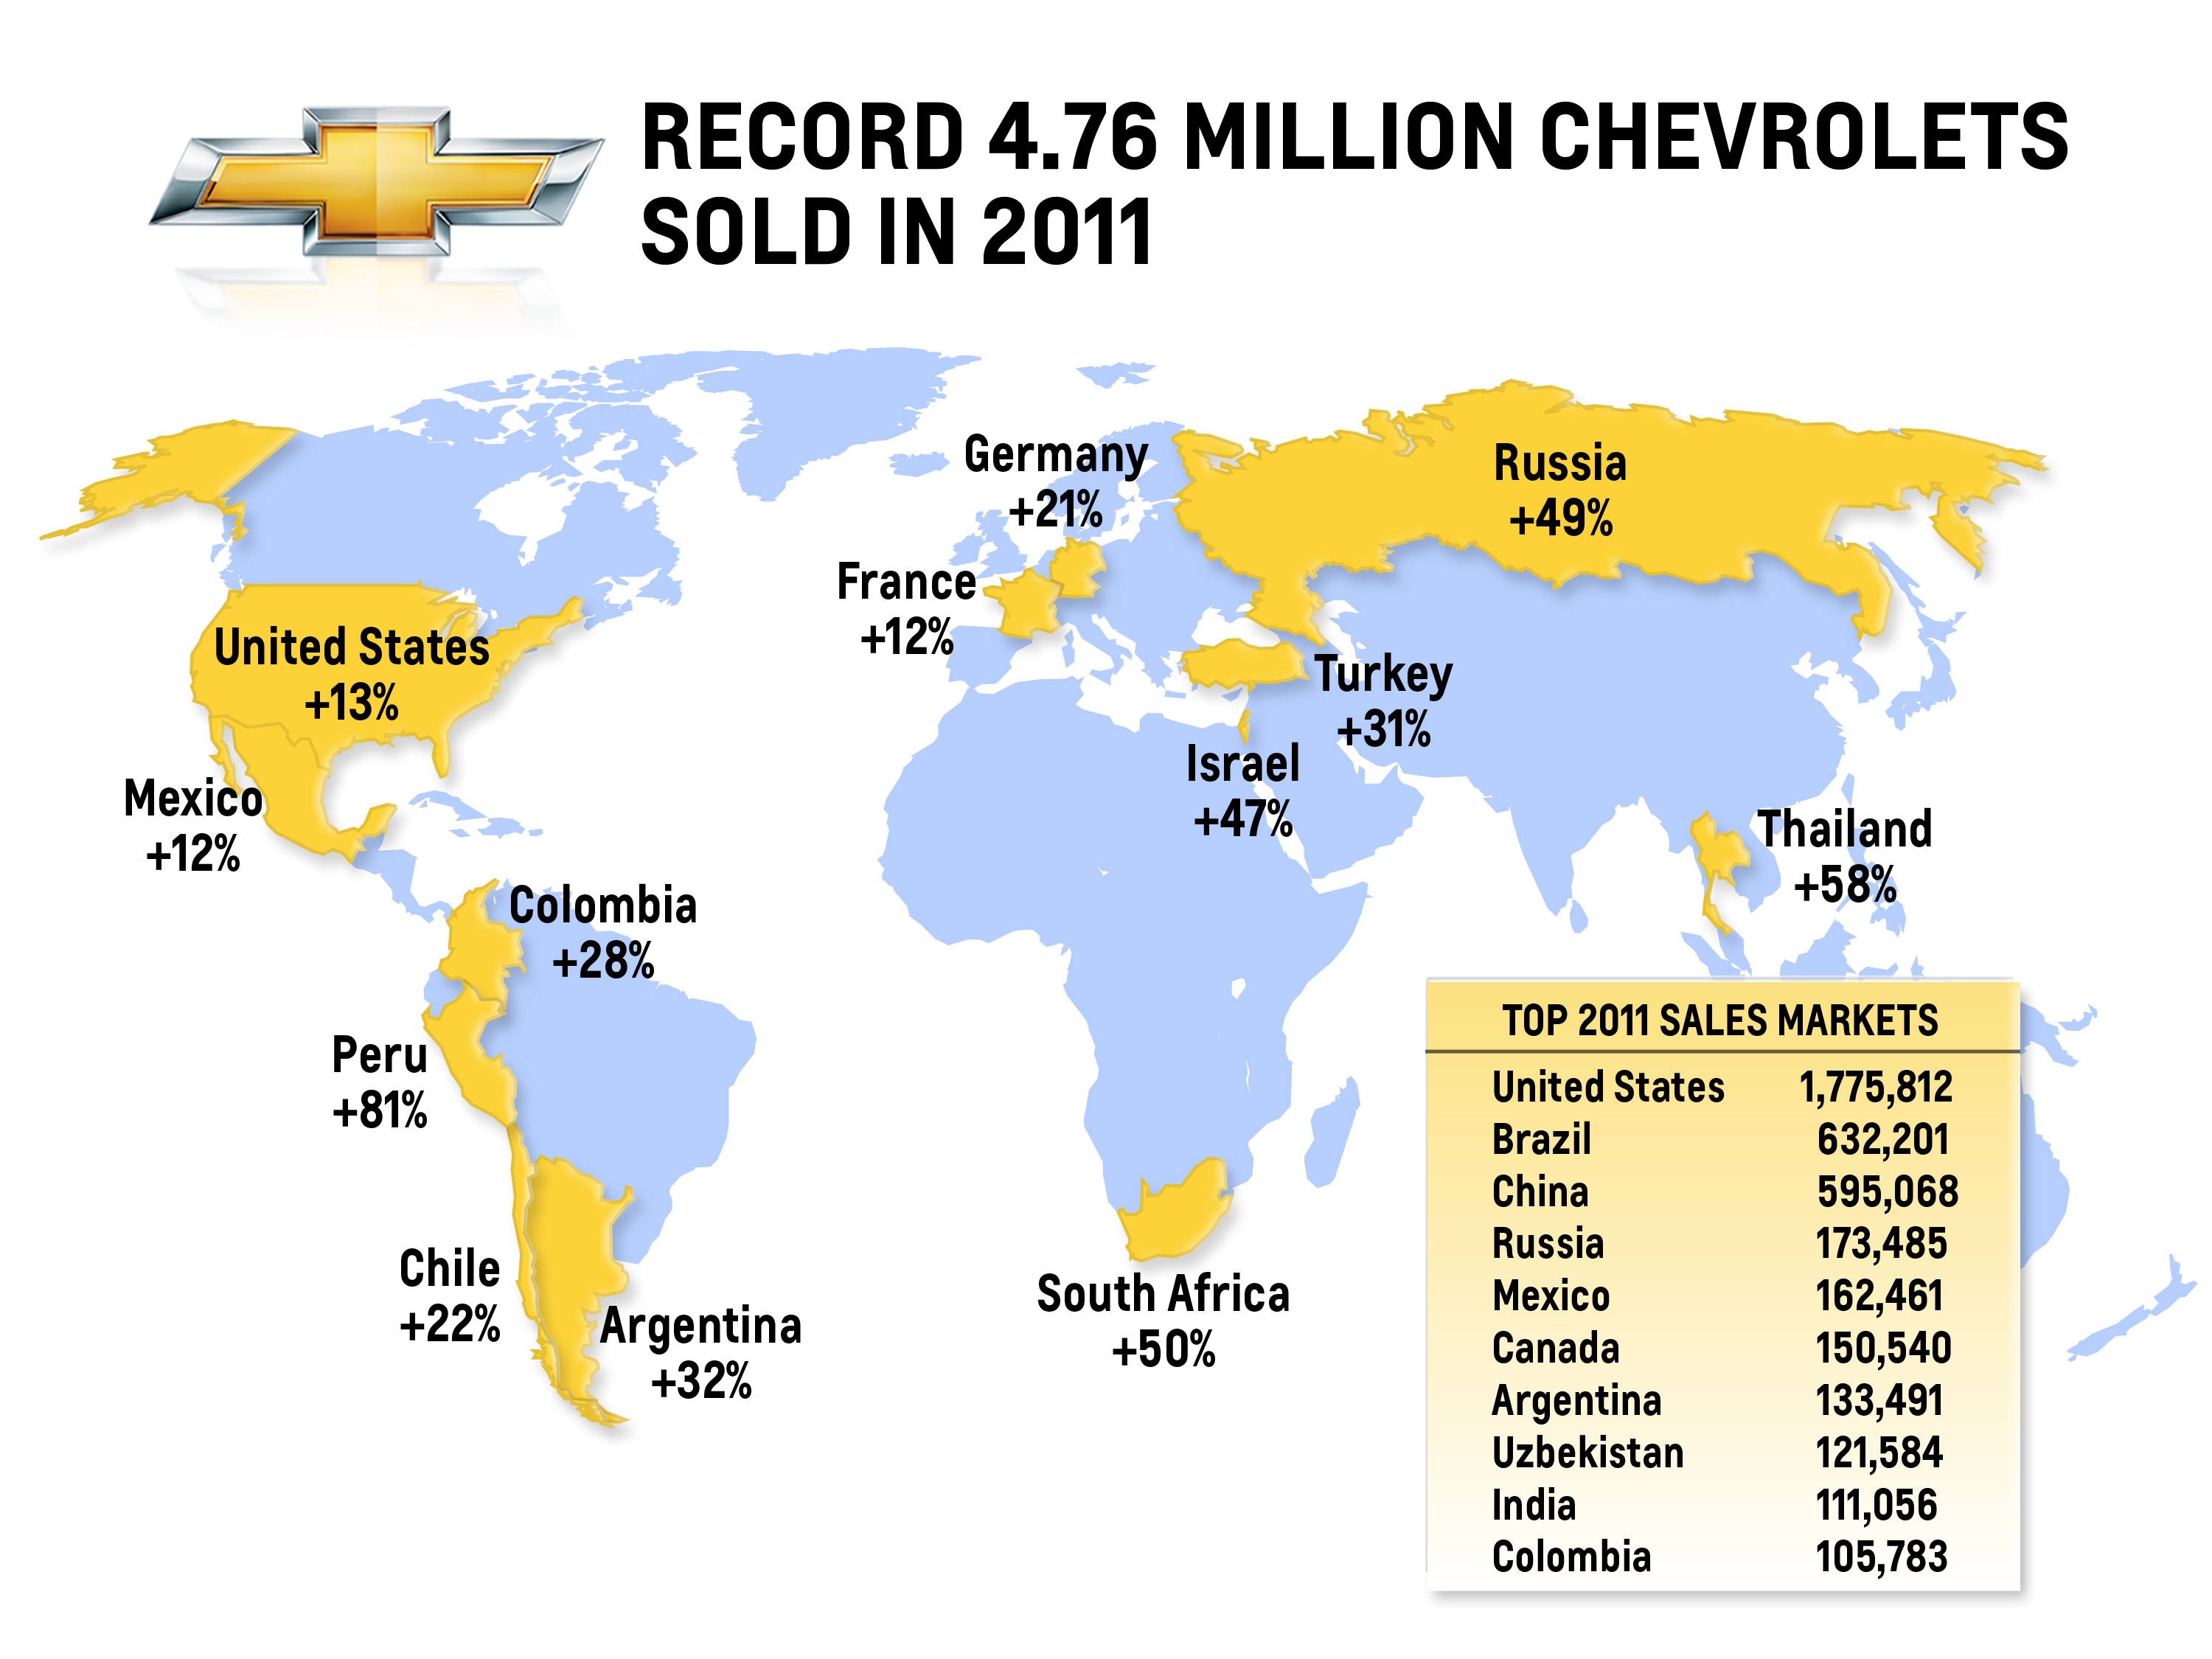 Chevy_2011_Sales